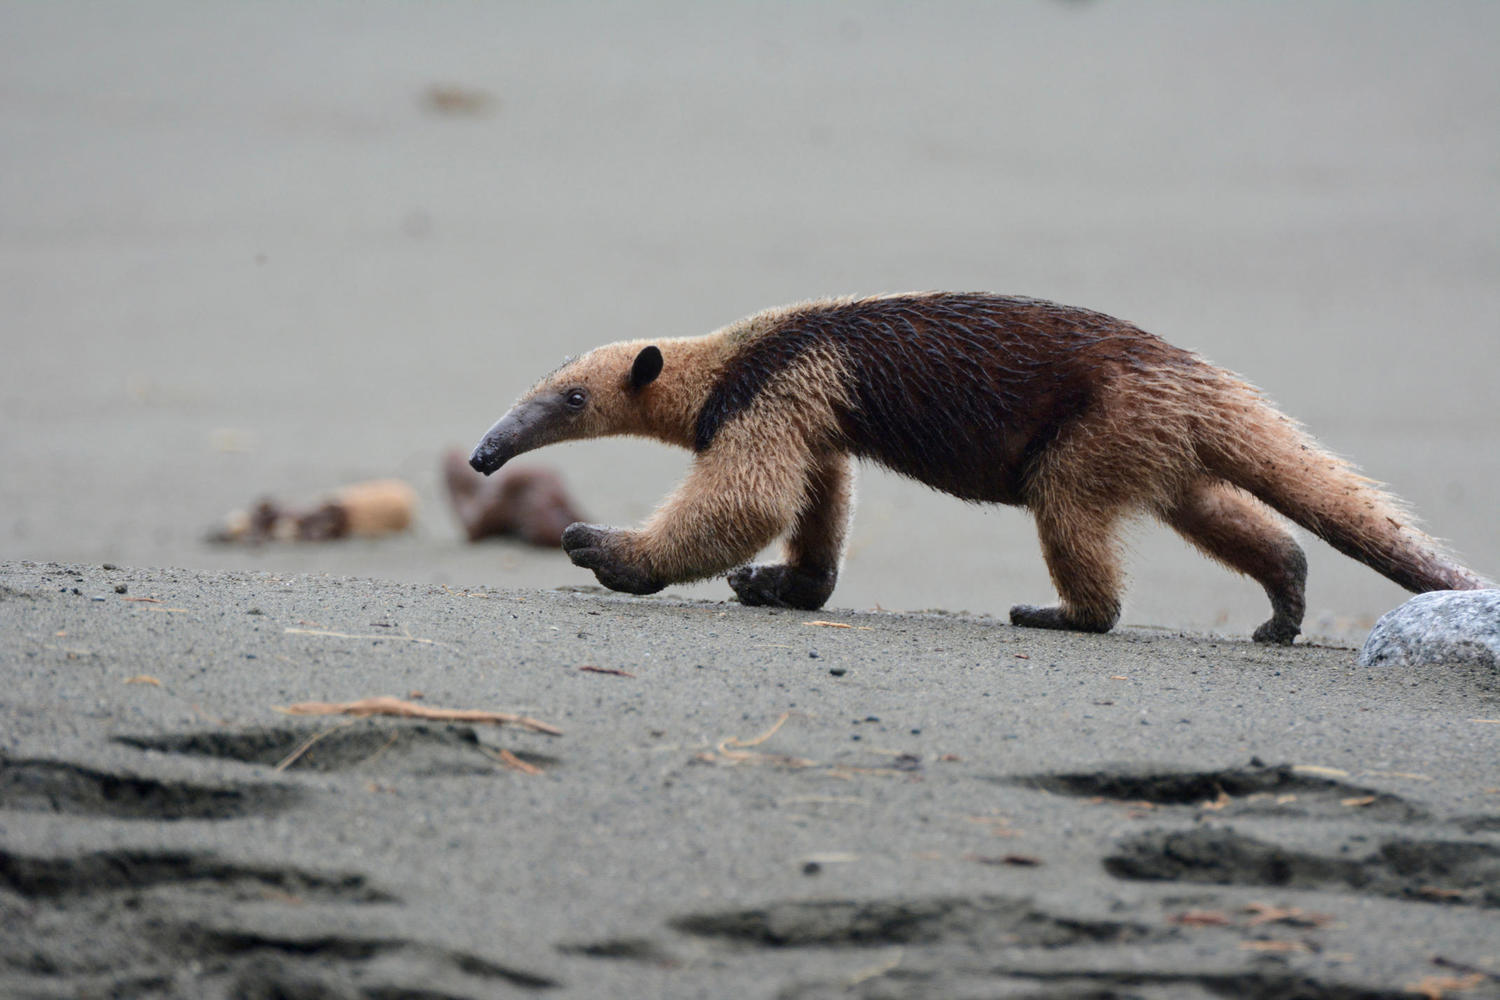 An anteater with huge feet combs the beach for food